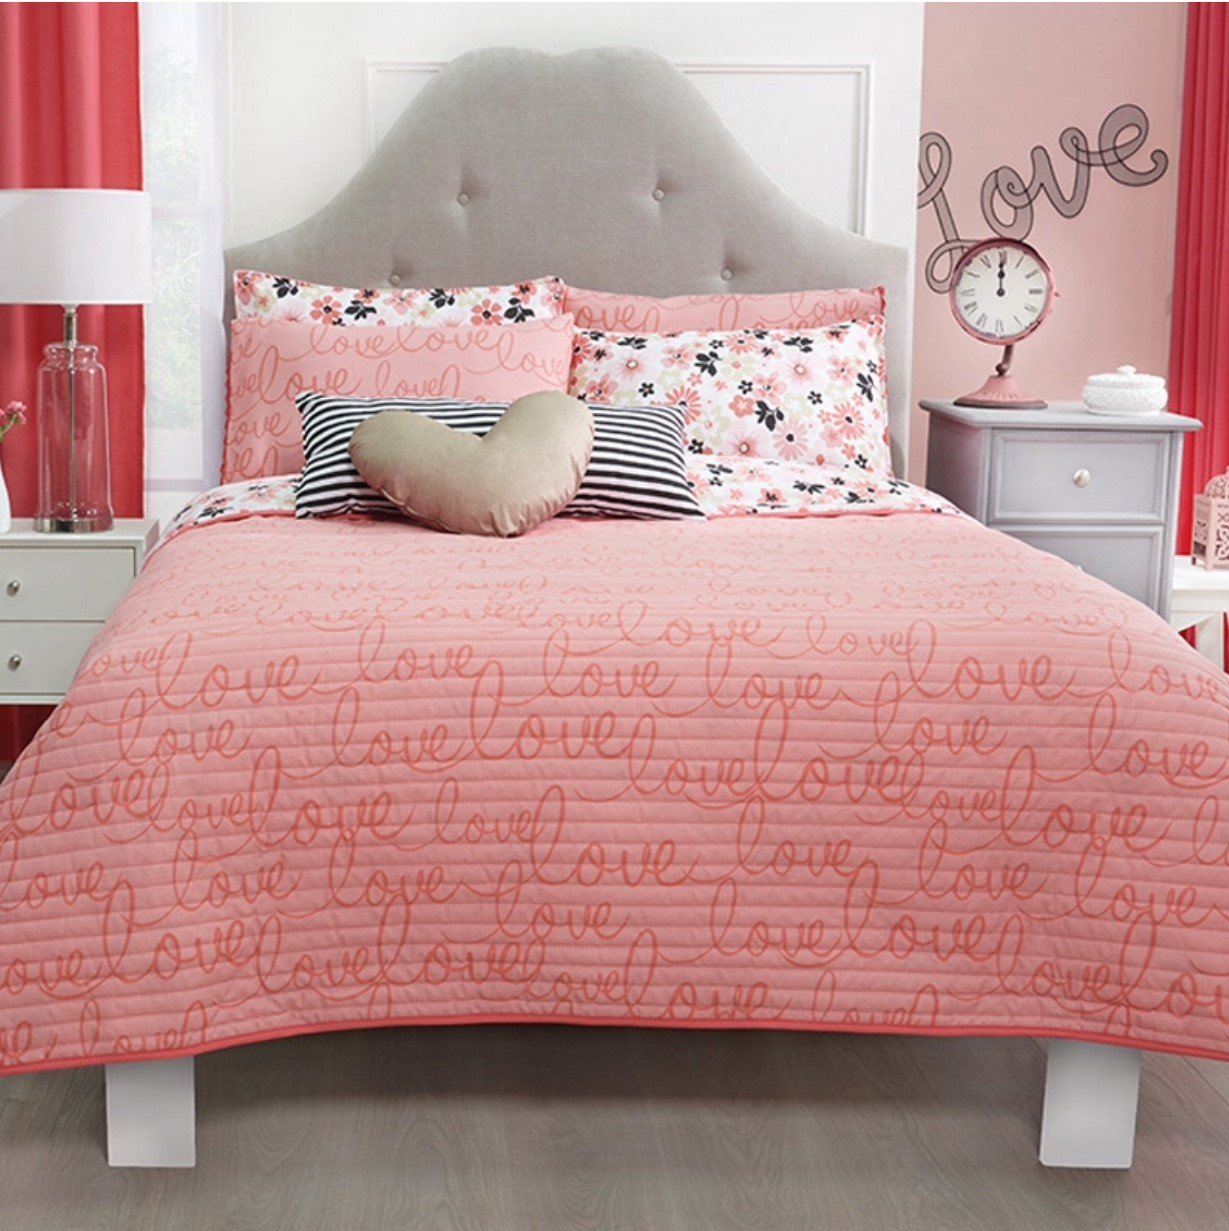 LIMITED EDITION LOVE TEENS GIRLS REVERSIBLE COMFORTER SET 5 PCS QUEEN/FULL SIZE